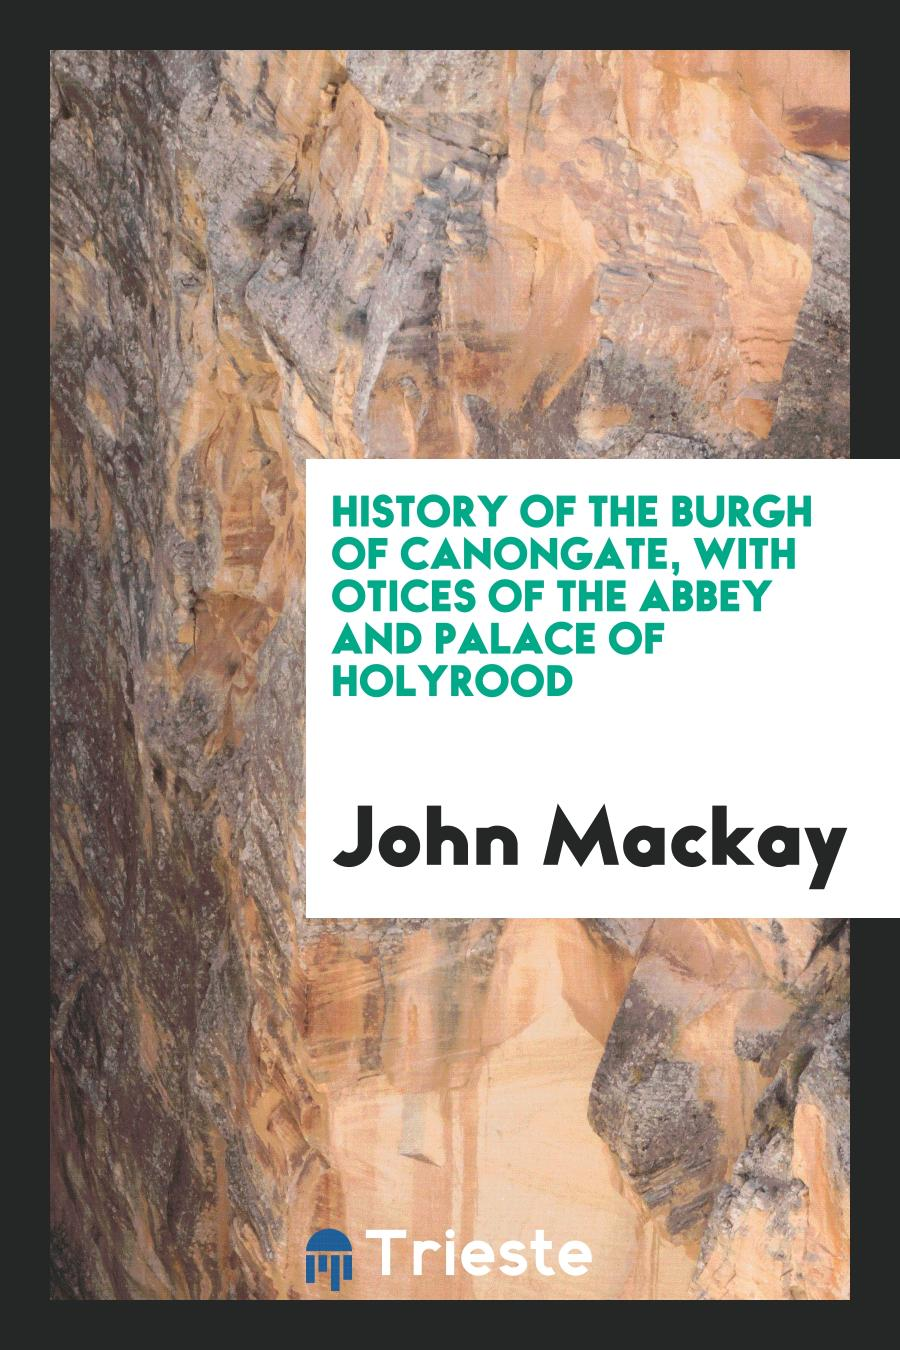 History of the Burgh of Canongate, with otices of the Abbey and Palace of Holyrood